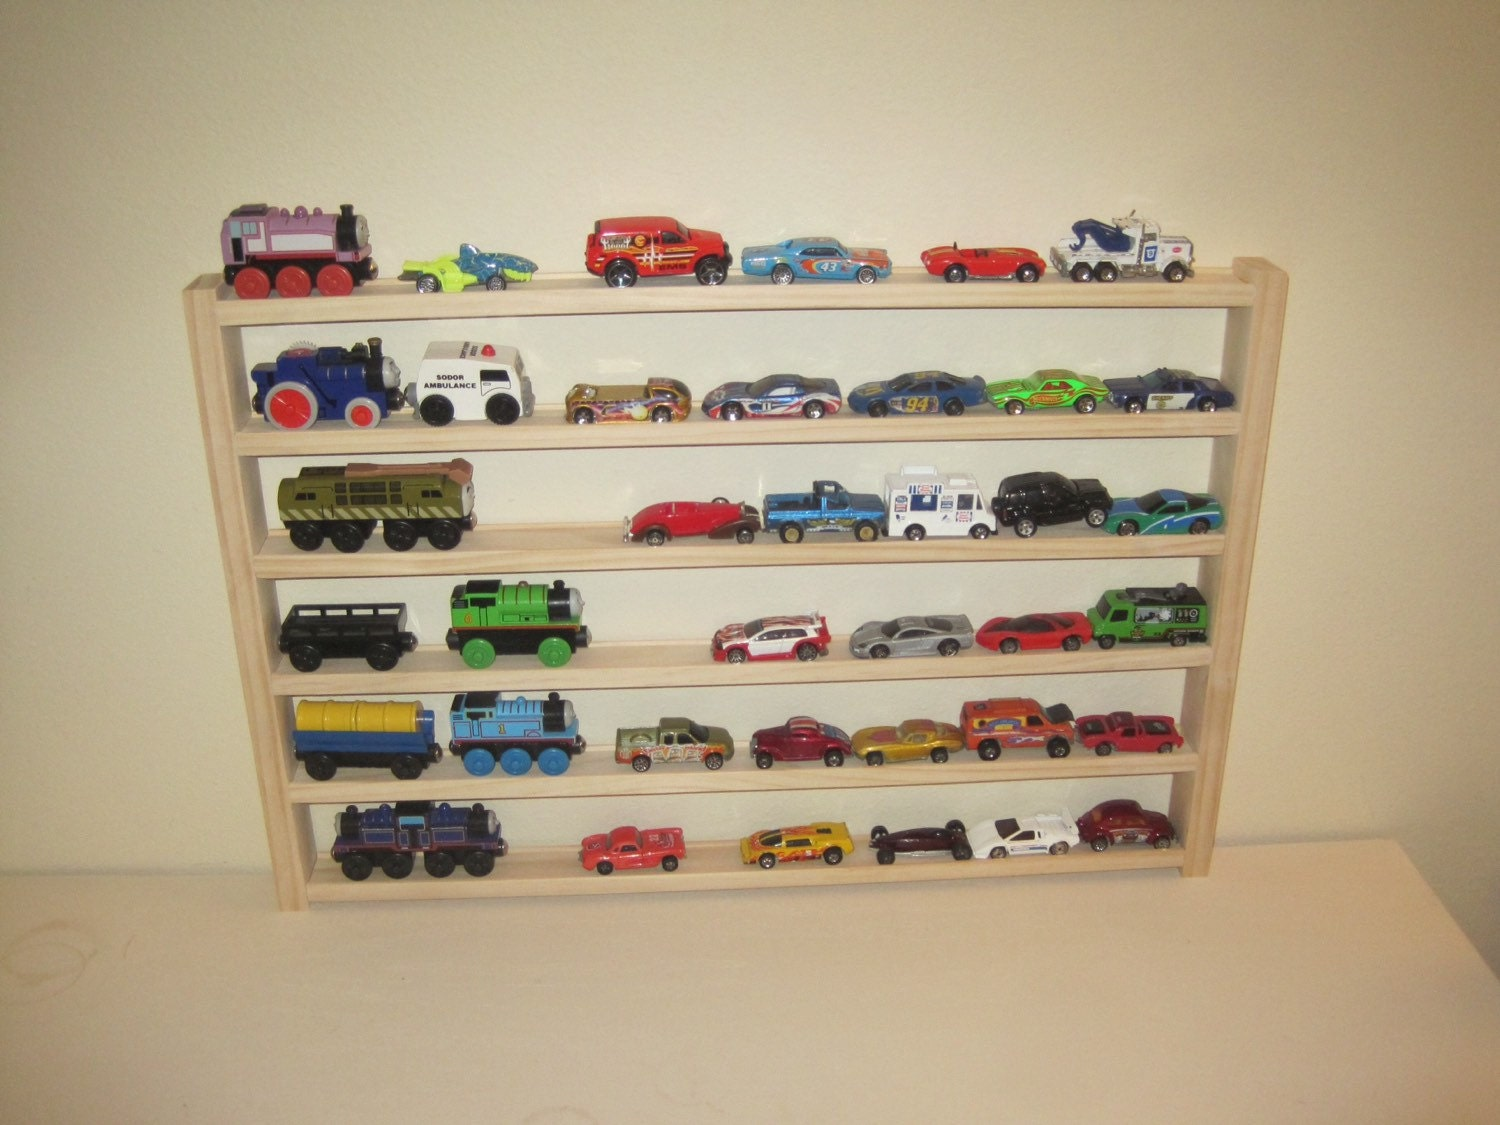 Toy Car Rack : Car and train rack toy storage organization for